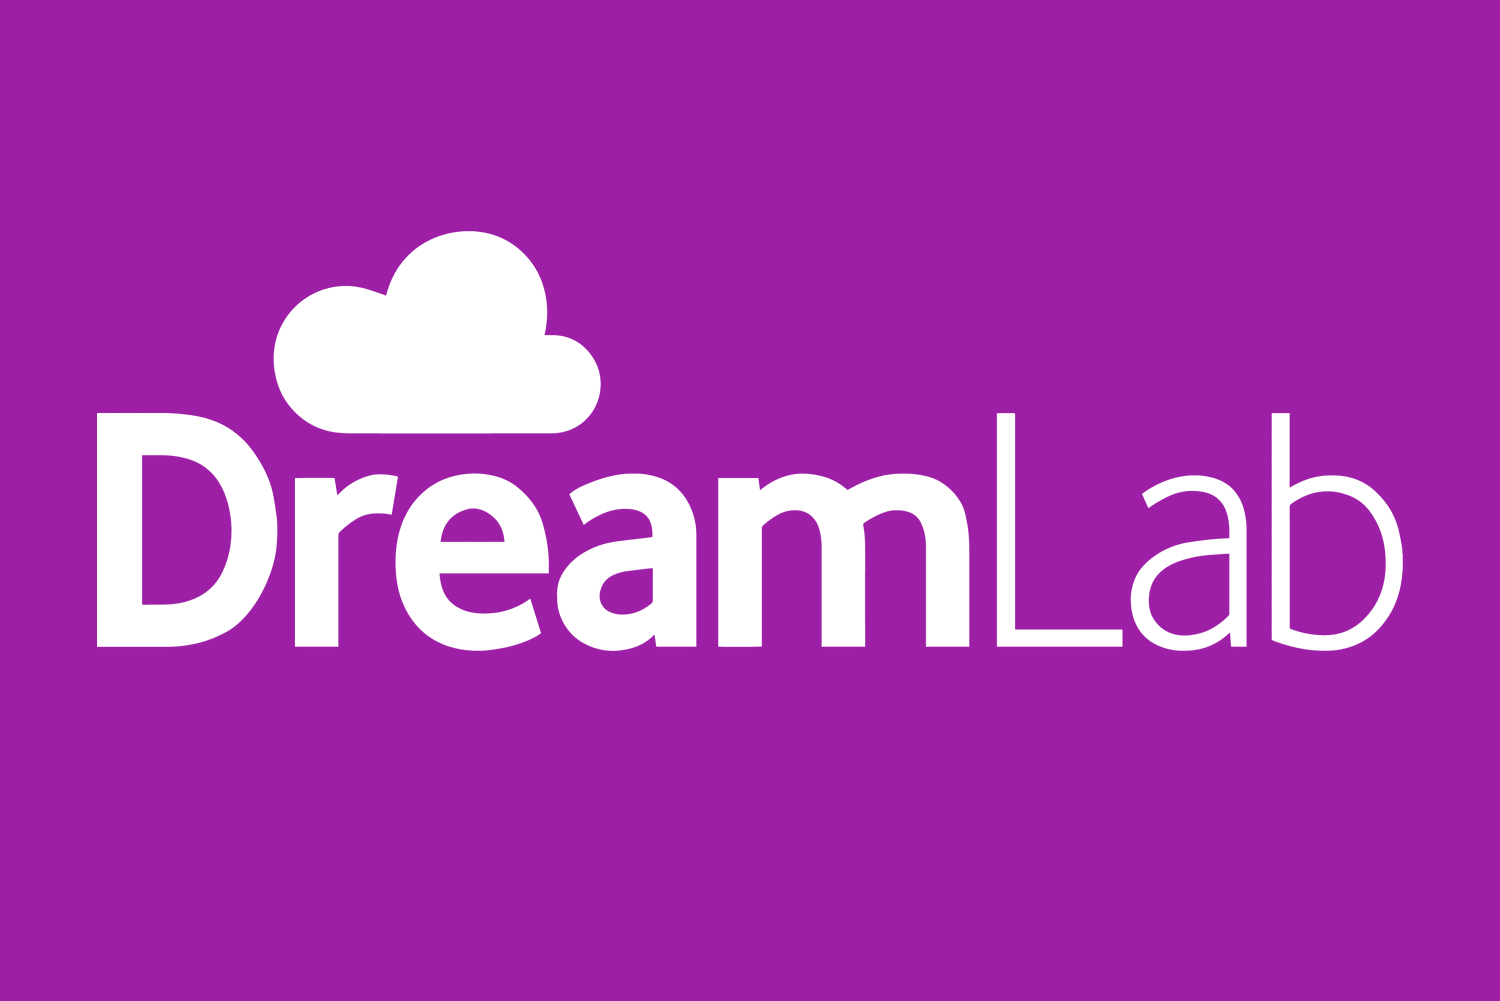 DreamLab-Website-Images-1_1.png